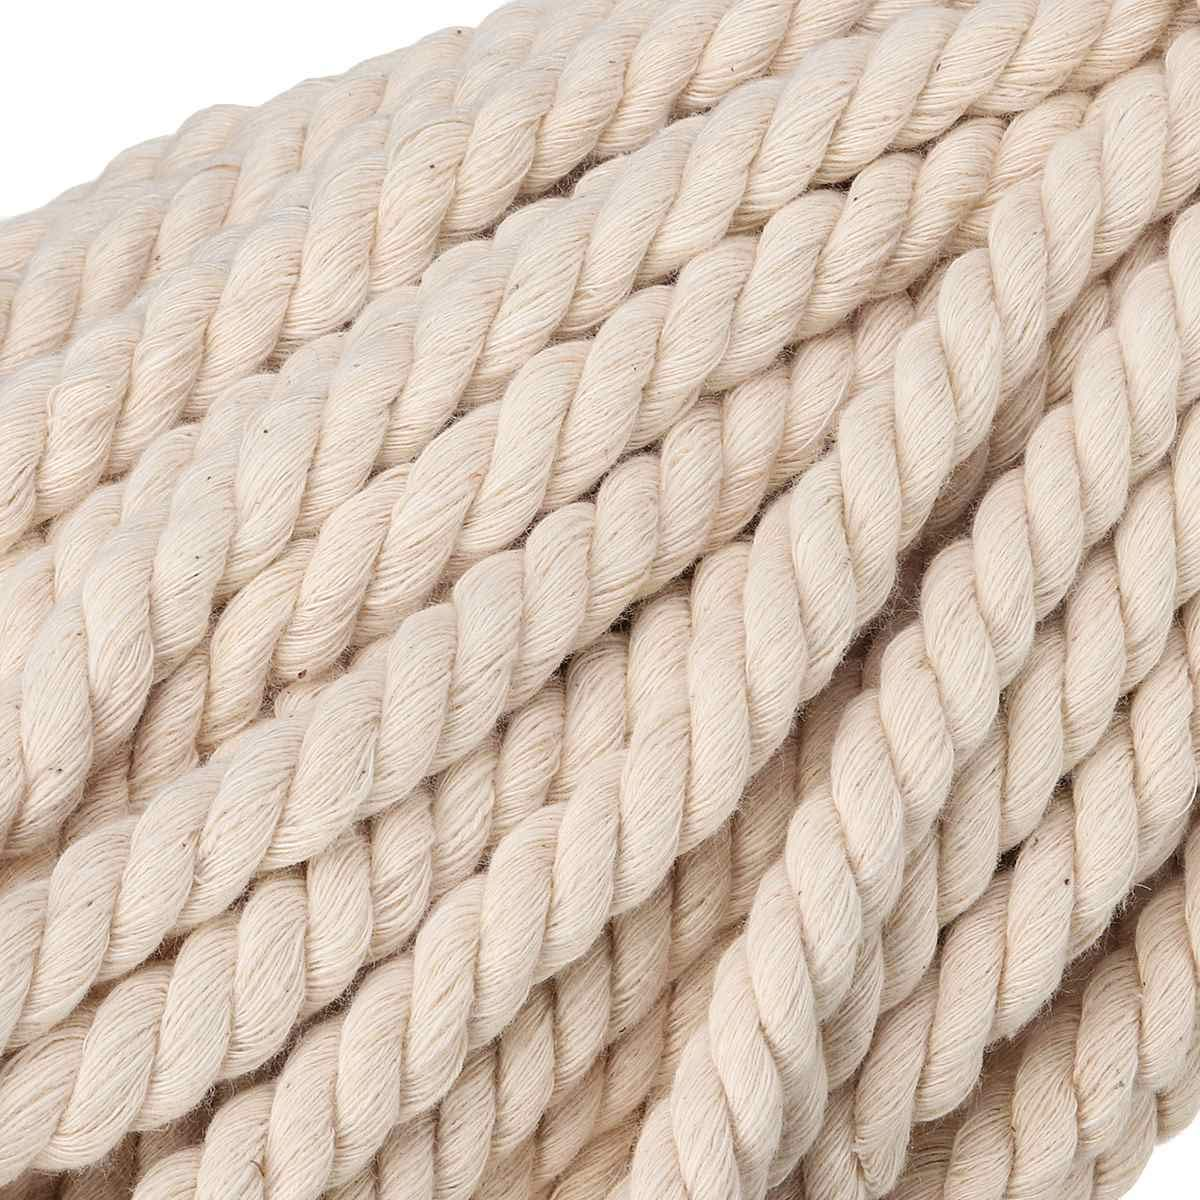 FINCOS Macrame Rope Natural Beige 10mm 45m Twisted Cord for Handmade Enthusiasts for Artisan DIY Hand Craft Cords Pure Cotton by FINCOS (Image #2)